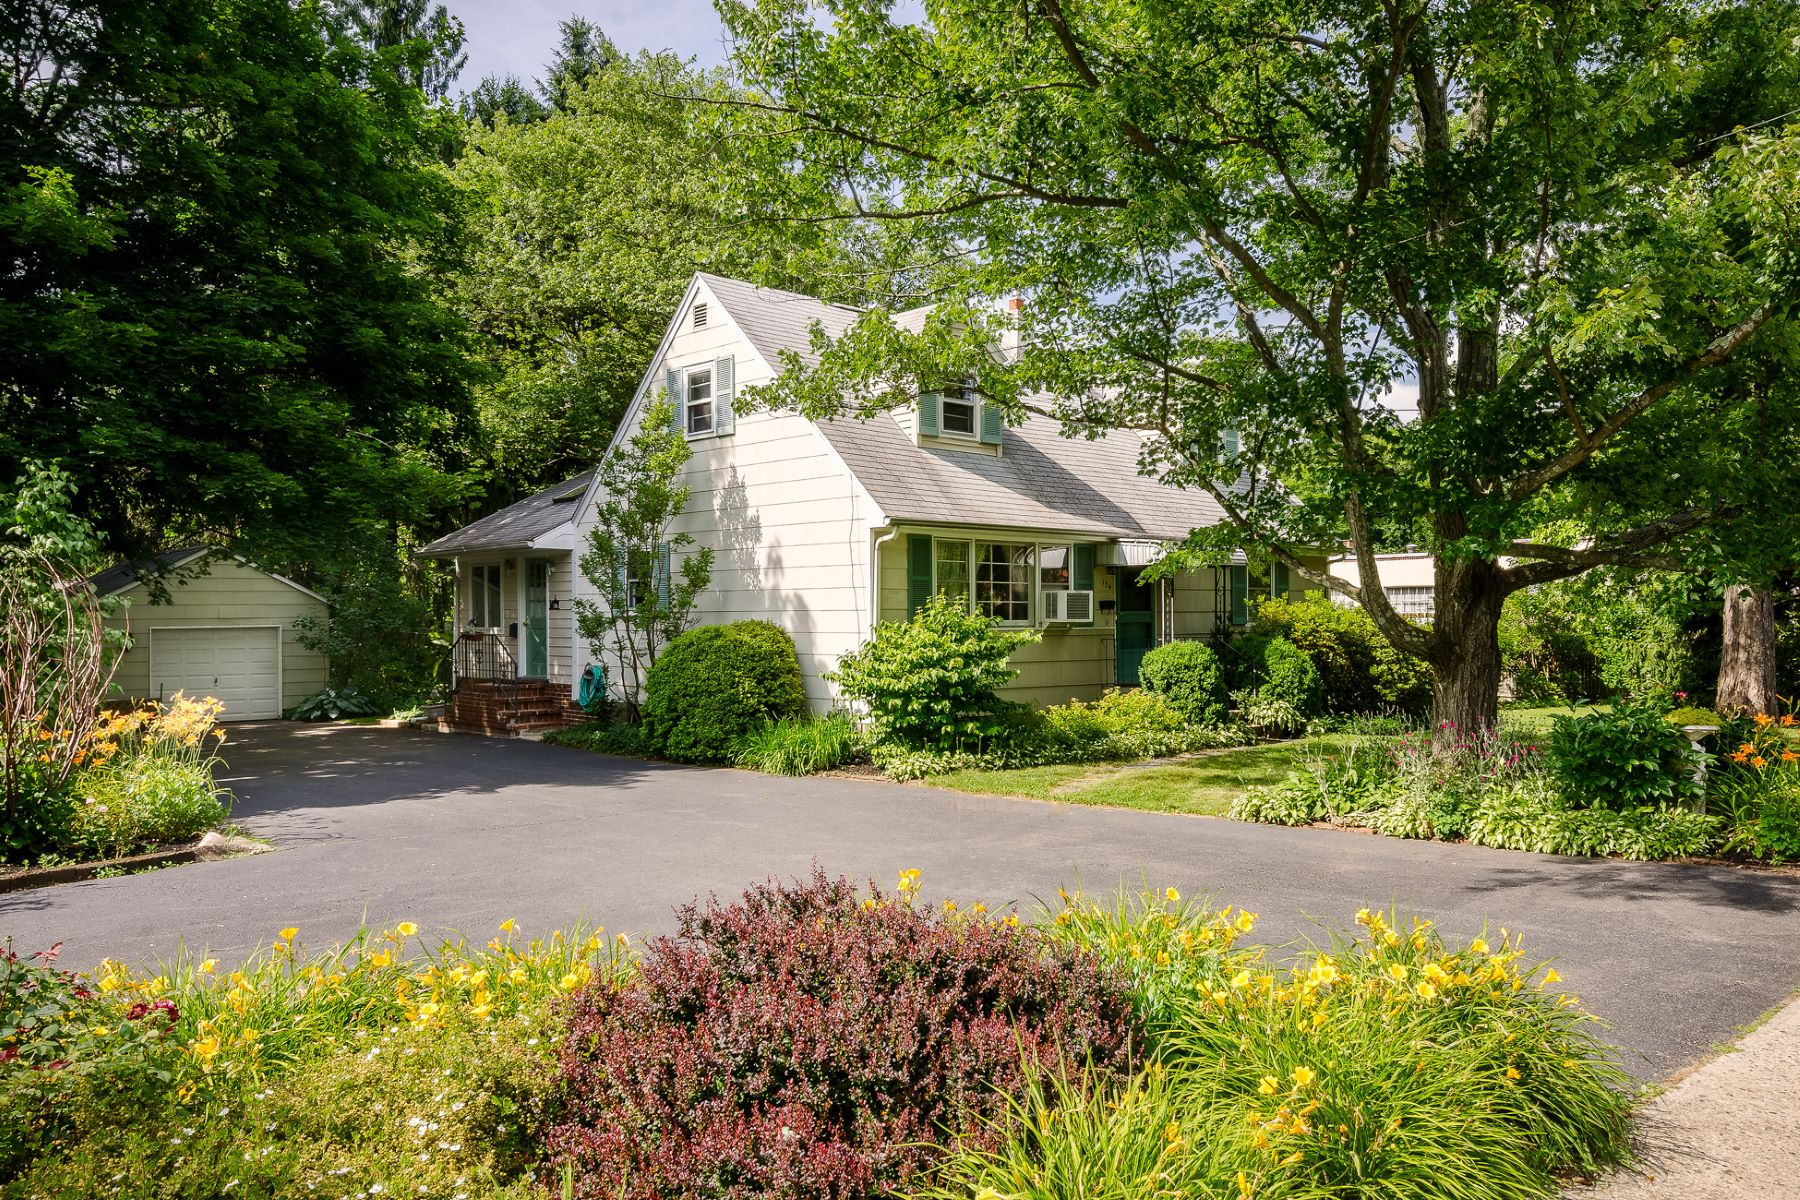 Single Family Home for Sale at Affordably Yours In The Borough 134 West Broad Street, Hopewell, New Jersey 08525 United StatesMunicipality: Hopewell Borough